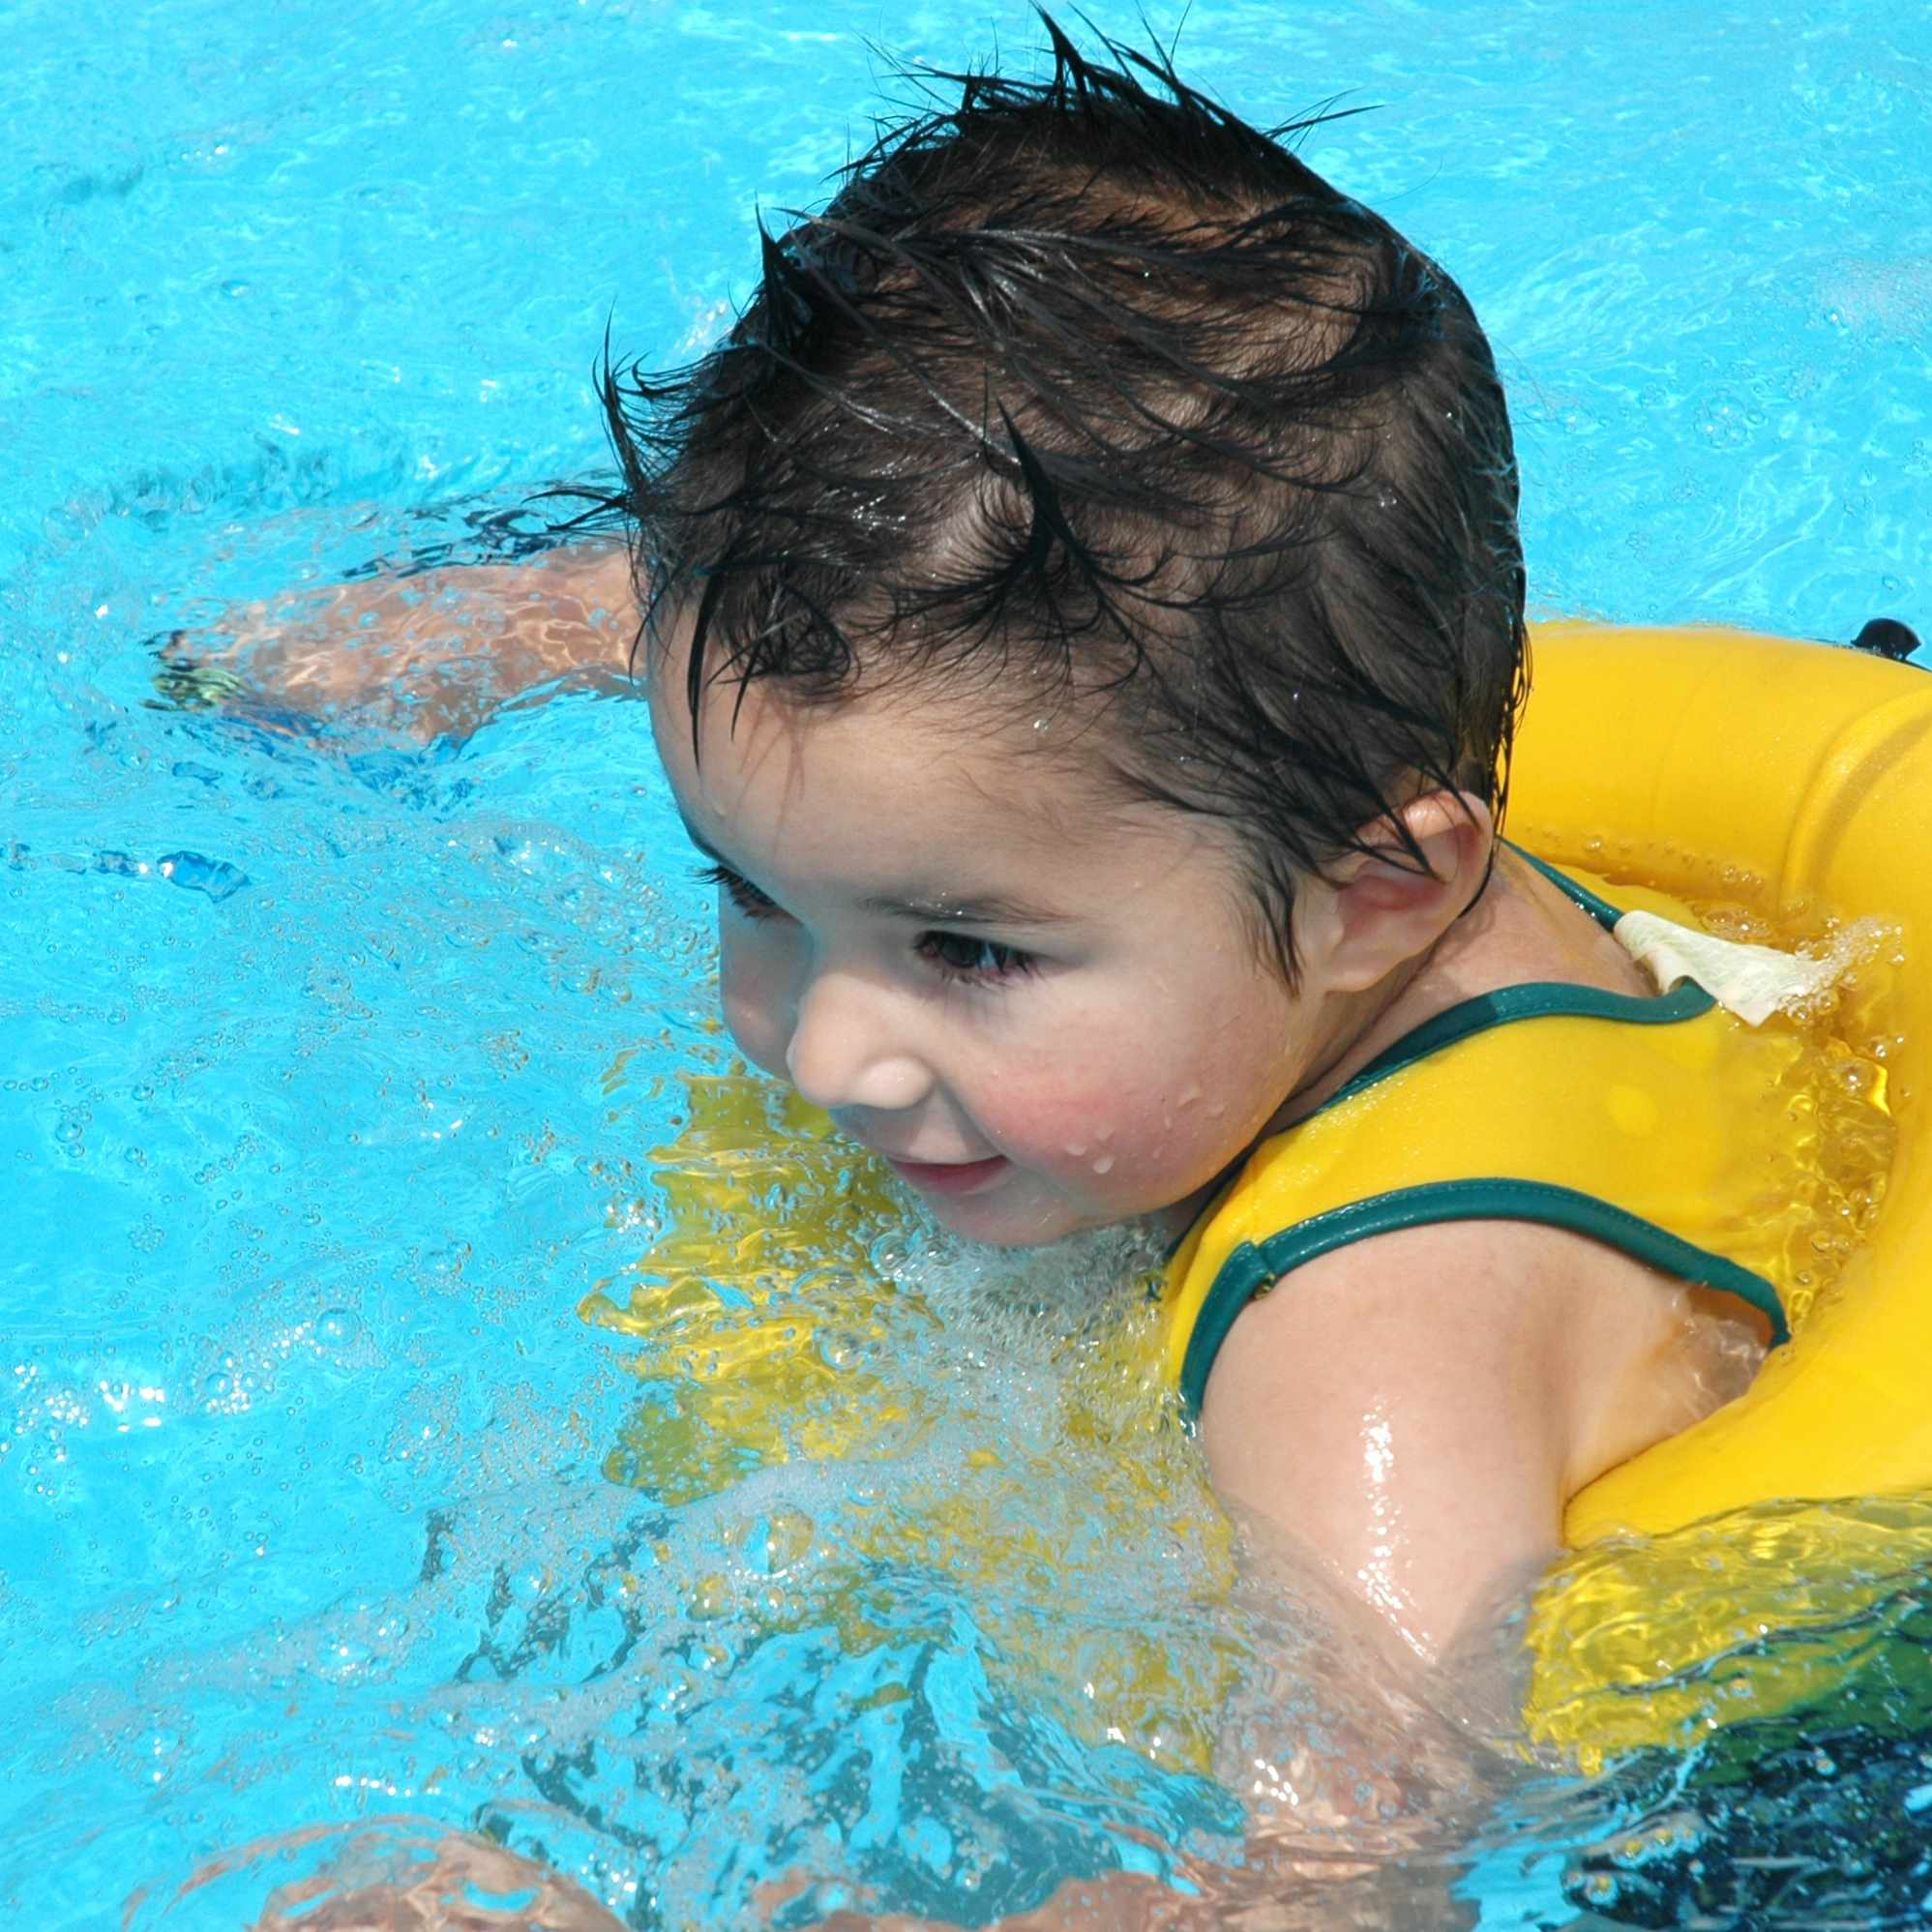 Little boy swimming in pool